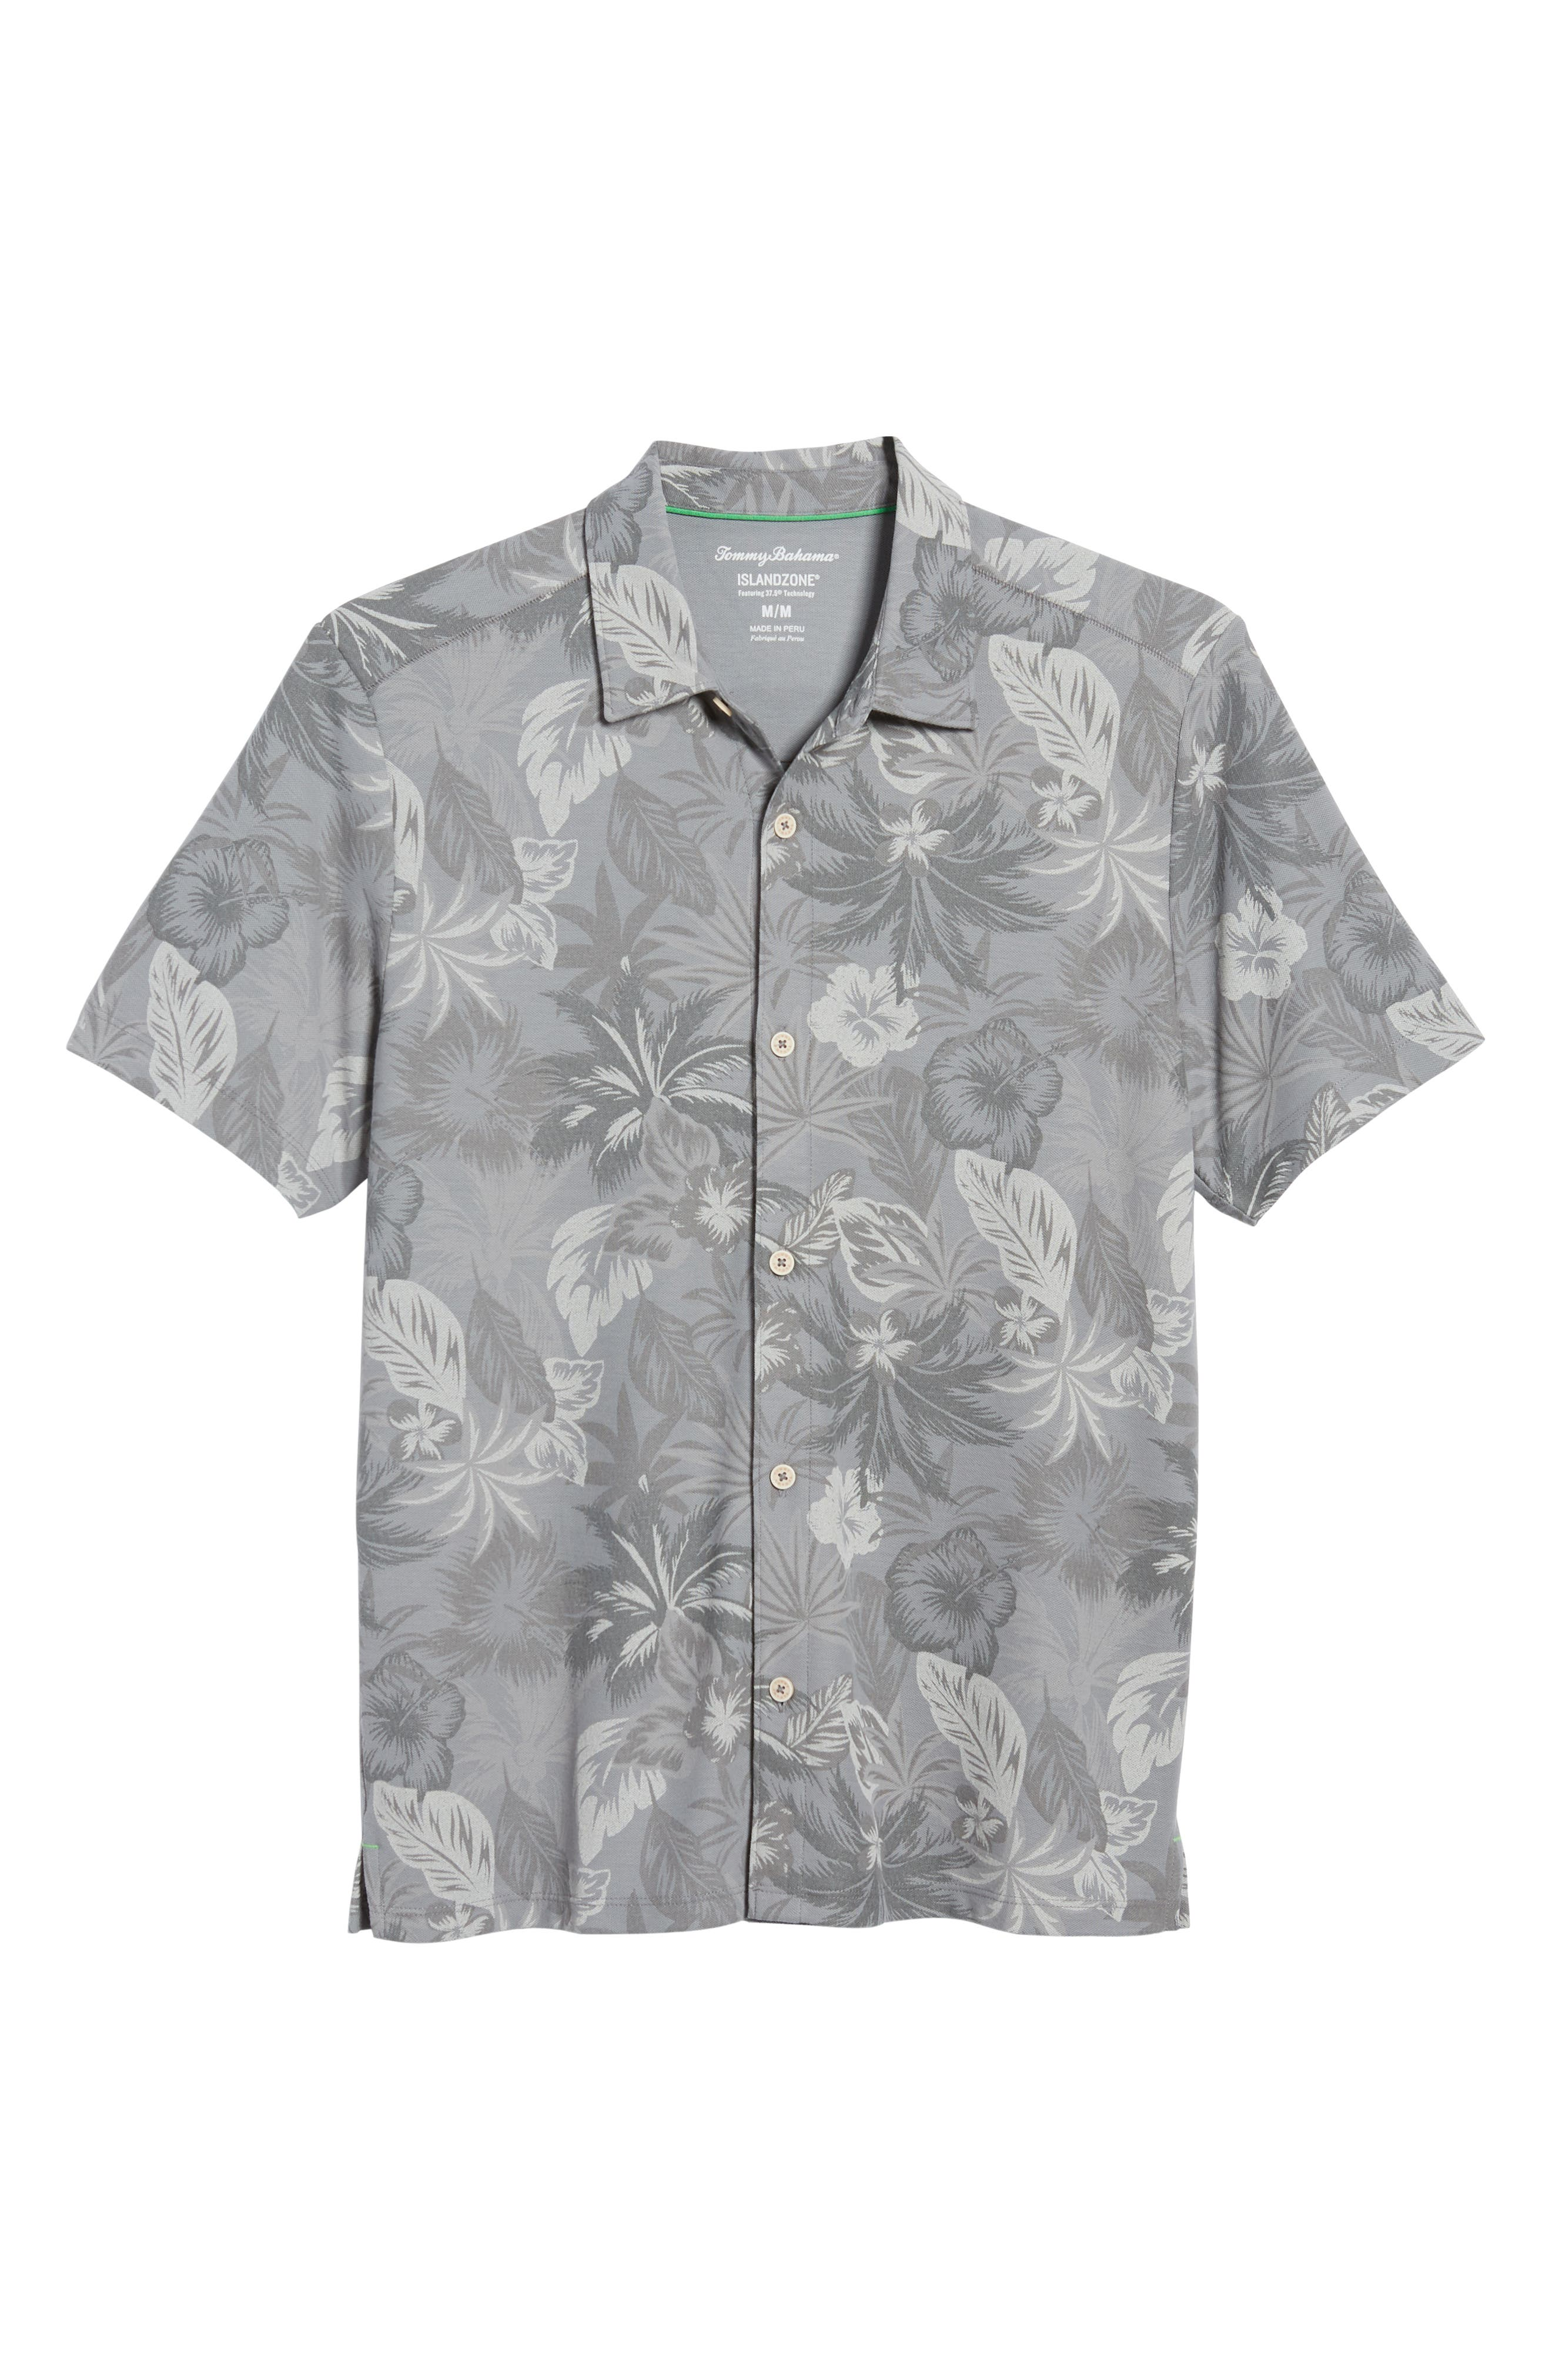 Fuego Floral Camp Shirt,                             Alternate thumbnail 6, color,                             050